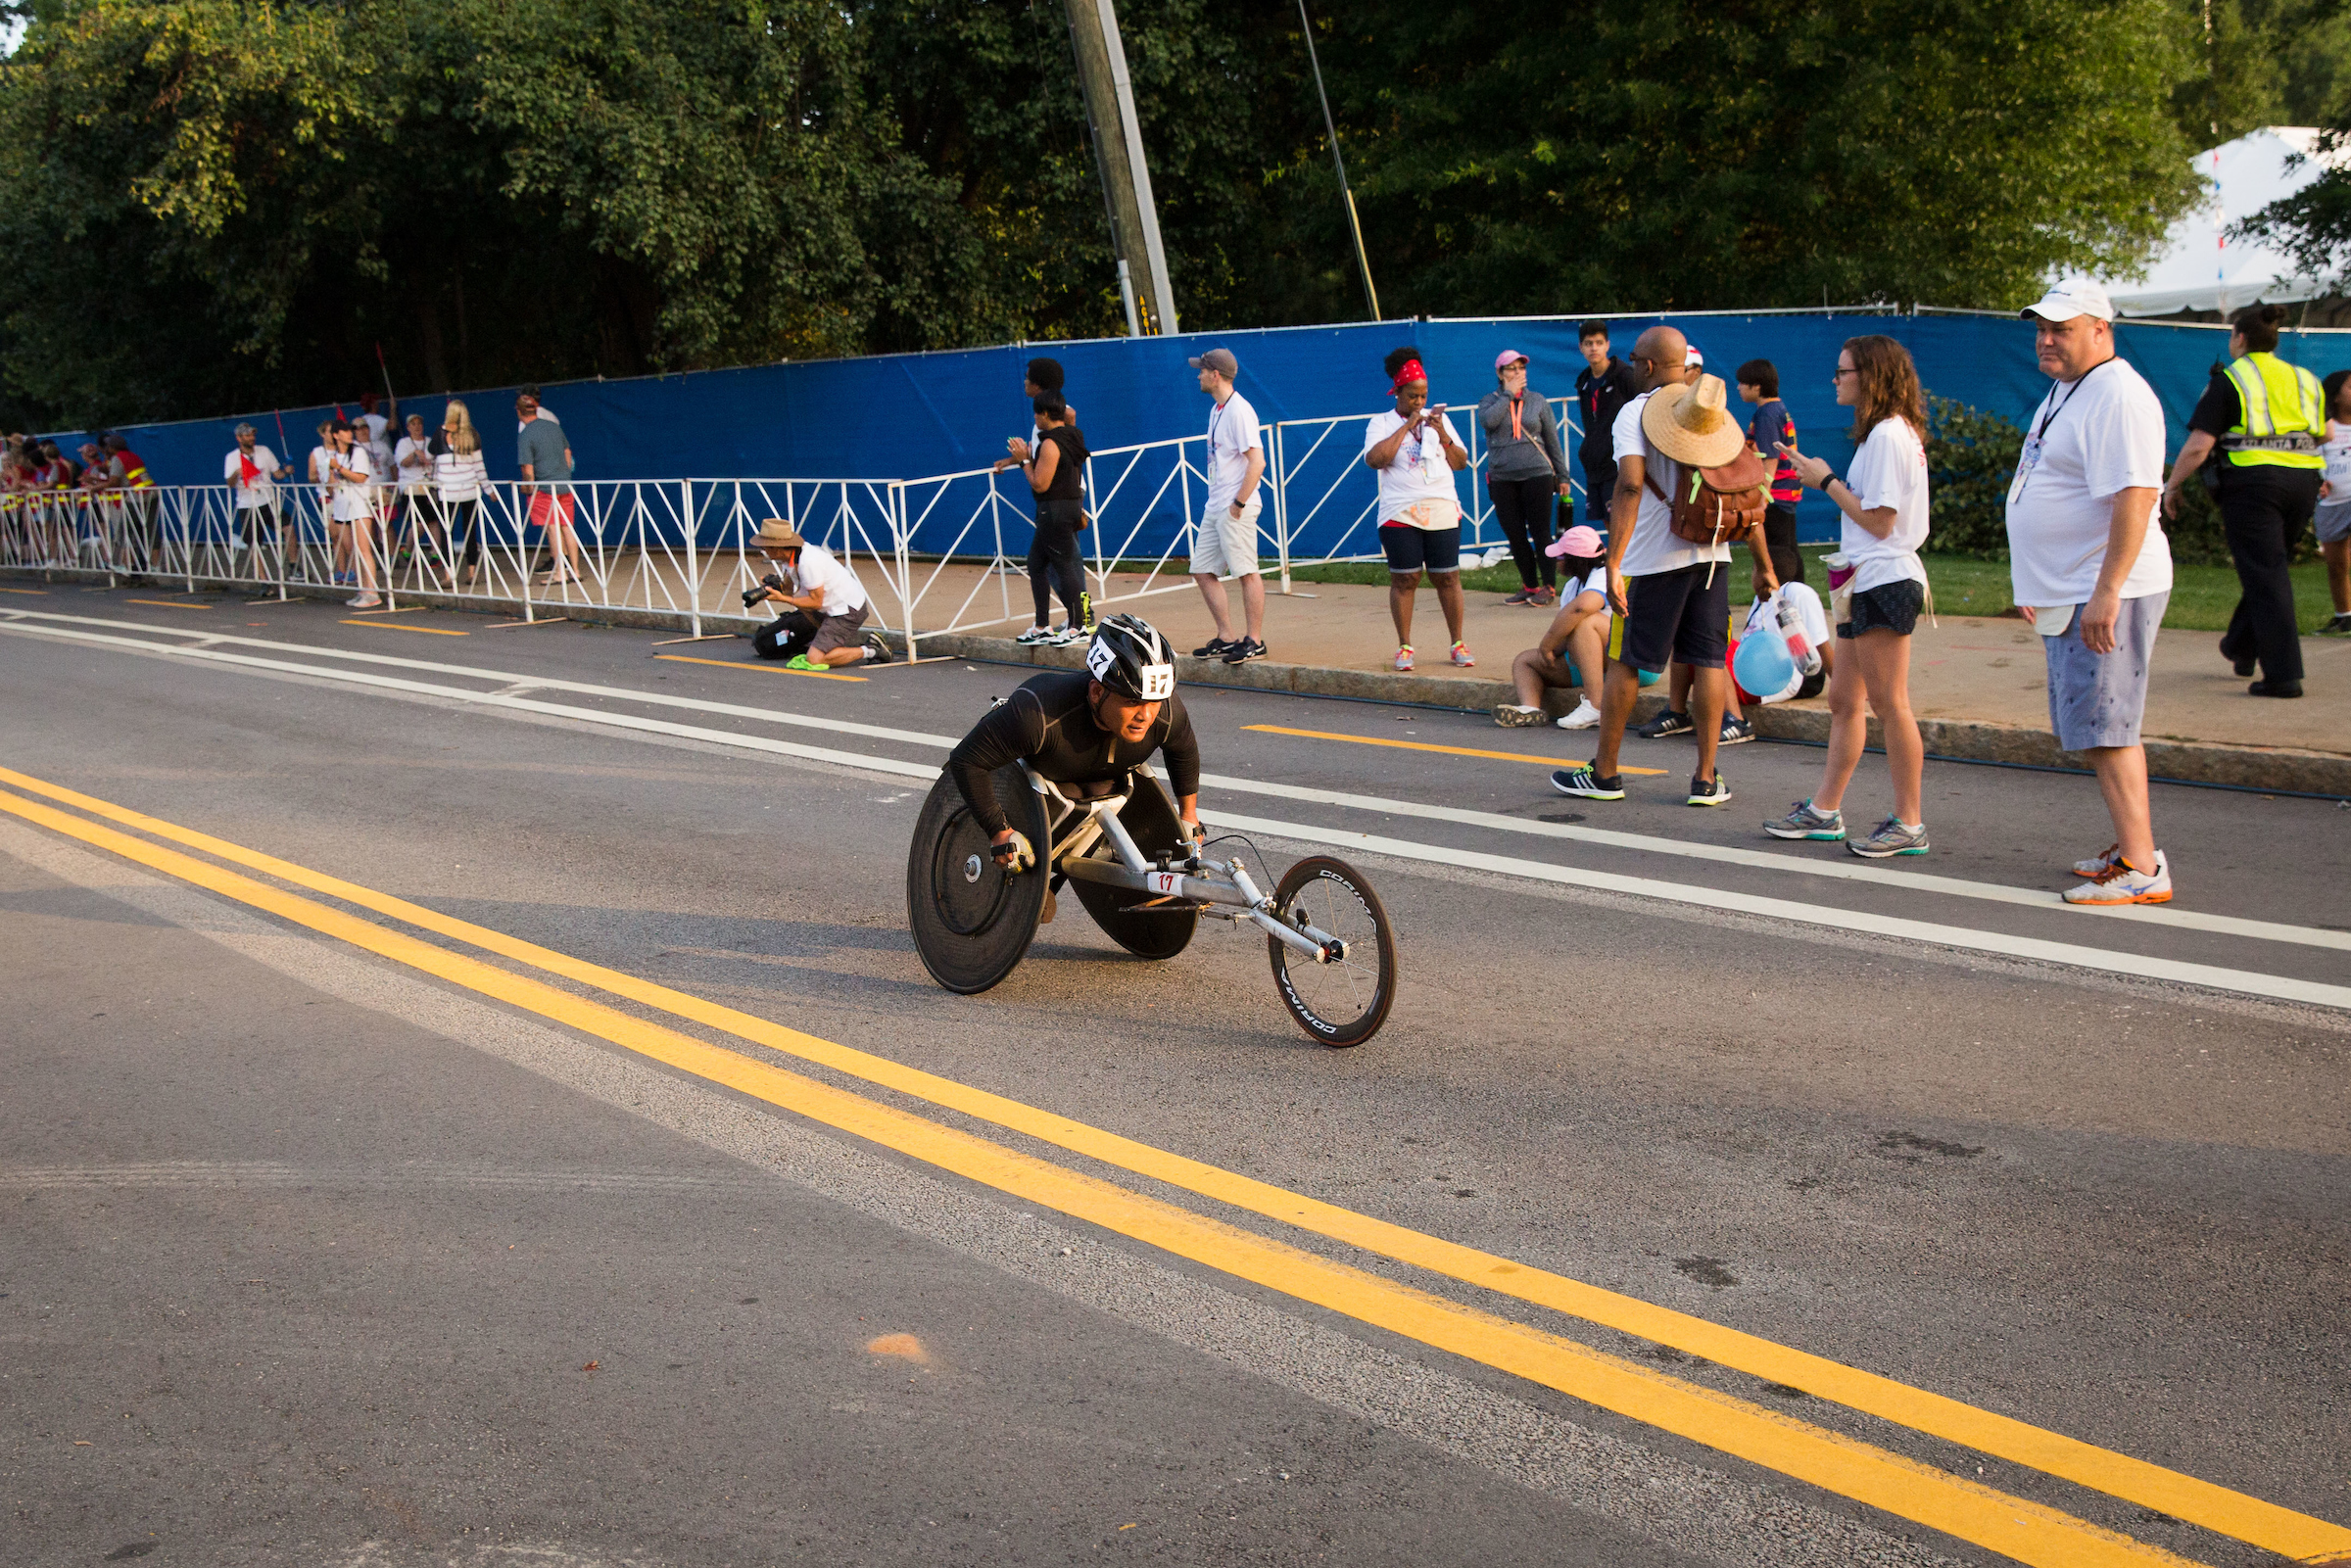 Peachtree road race results 2015 - Winners Announced For 2017 Wheelchair Division Of The Peachtree Road Race